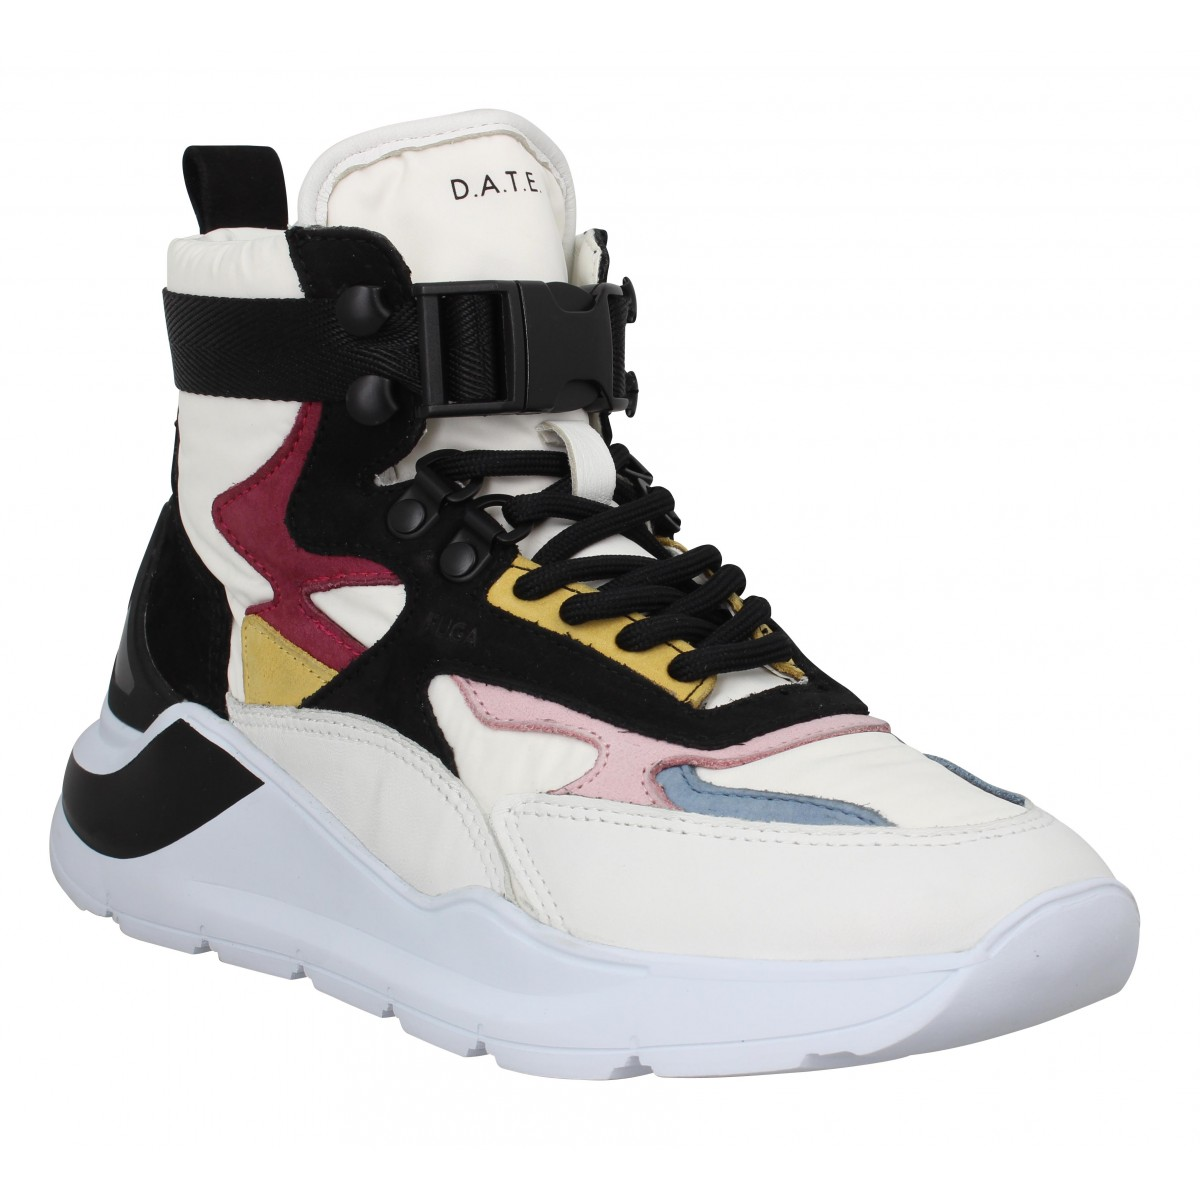 D.A.T.E Marque Date Sneakers Fuga High...